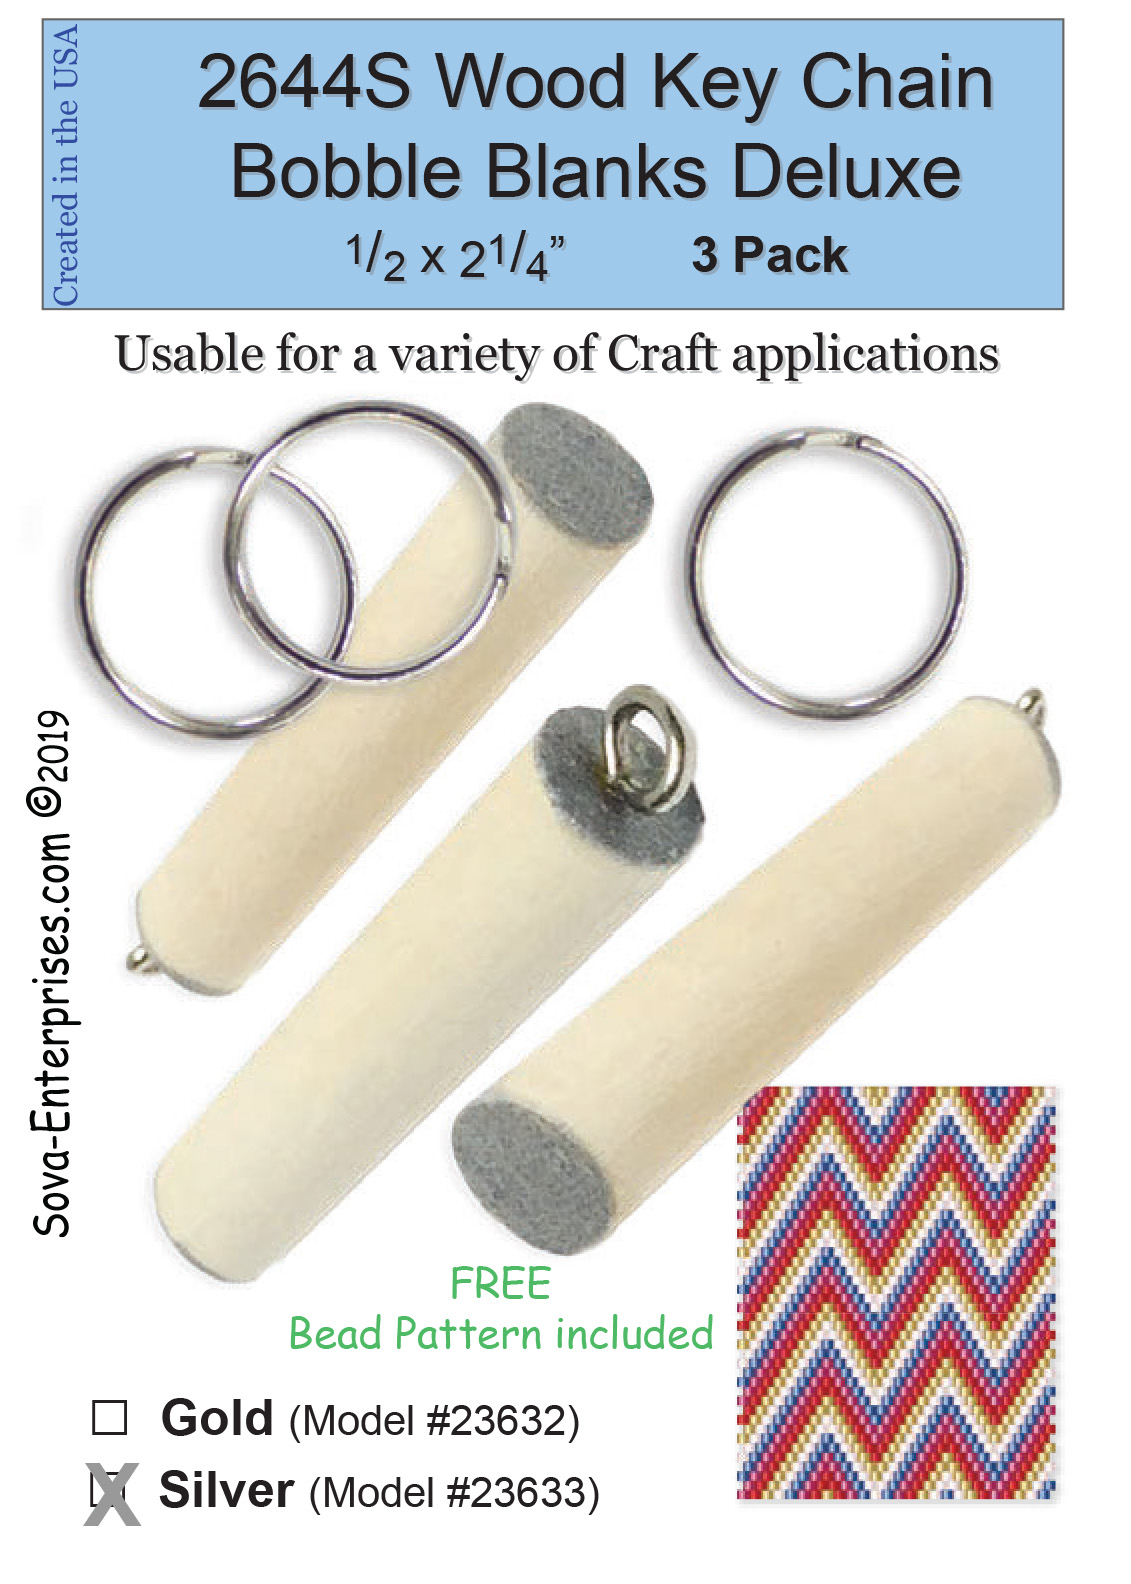 2044S Wood Key Chain Bobble Blanks Silver 3 Pack